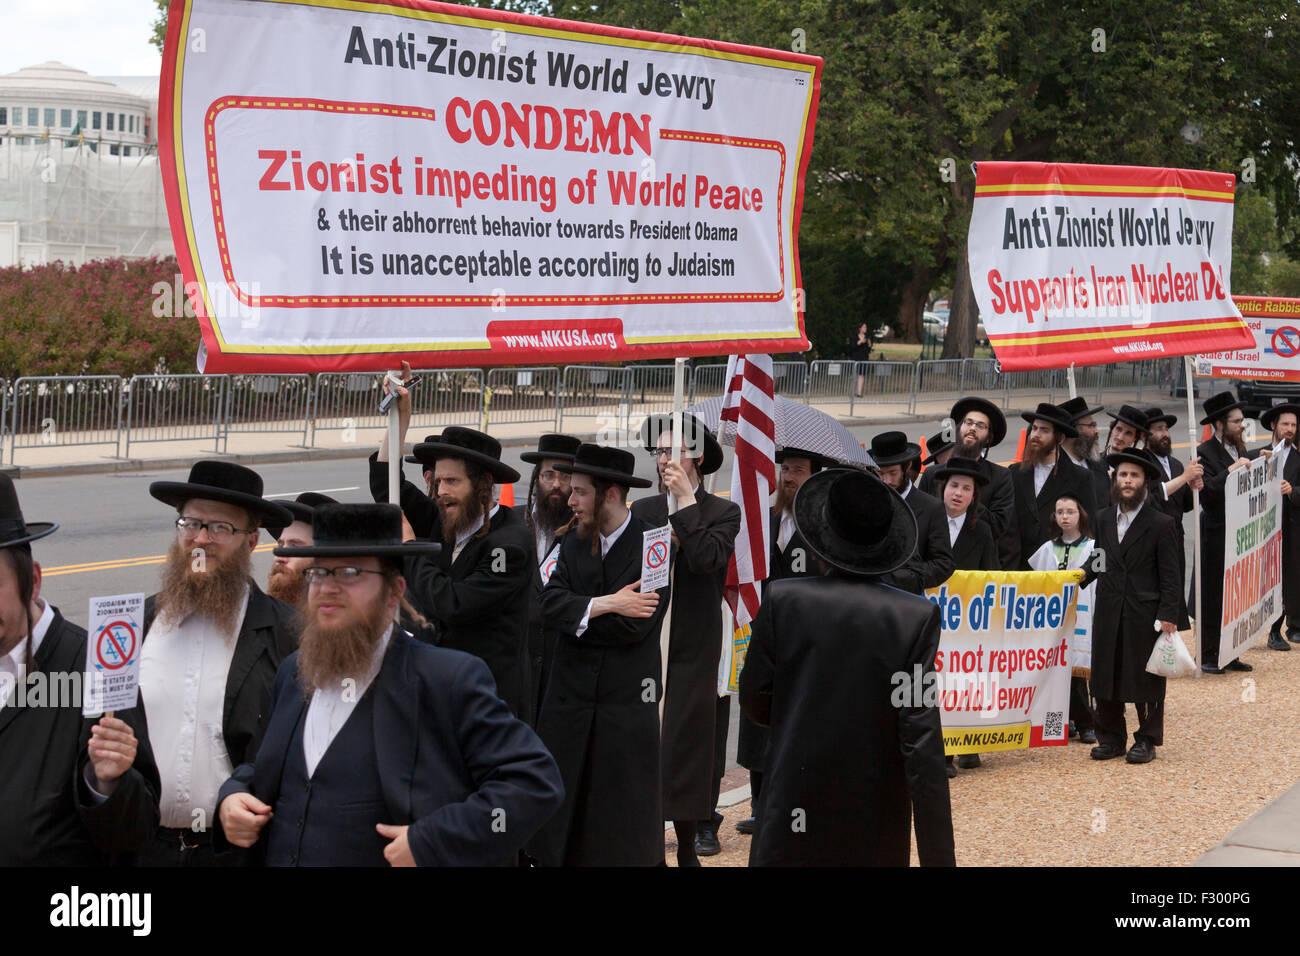 Neturei Karta Religious Group Rallying Against Zionism